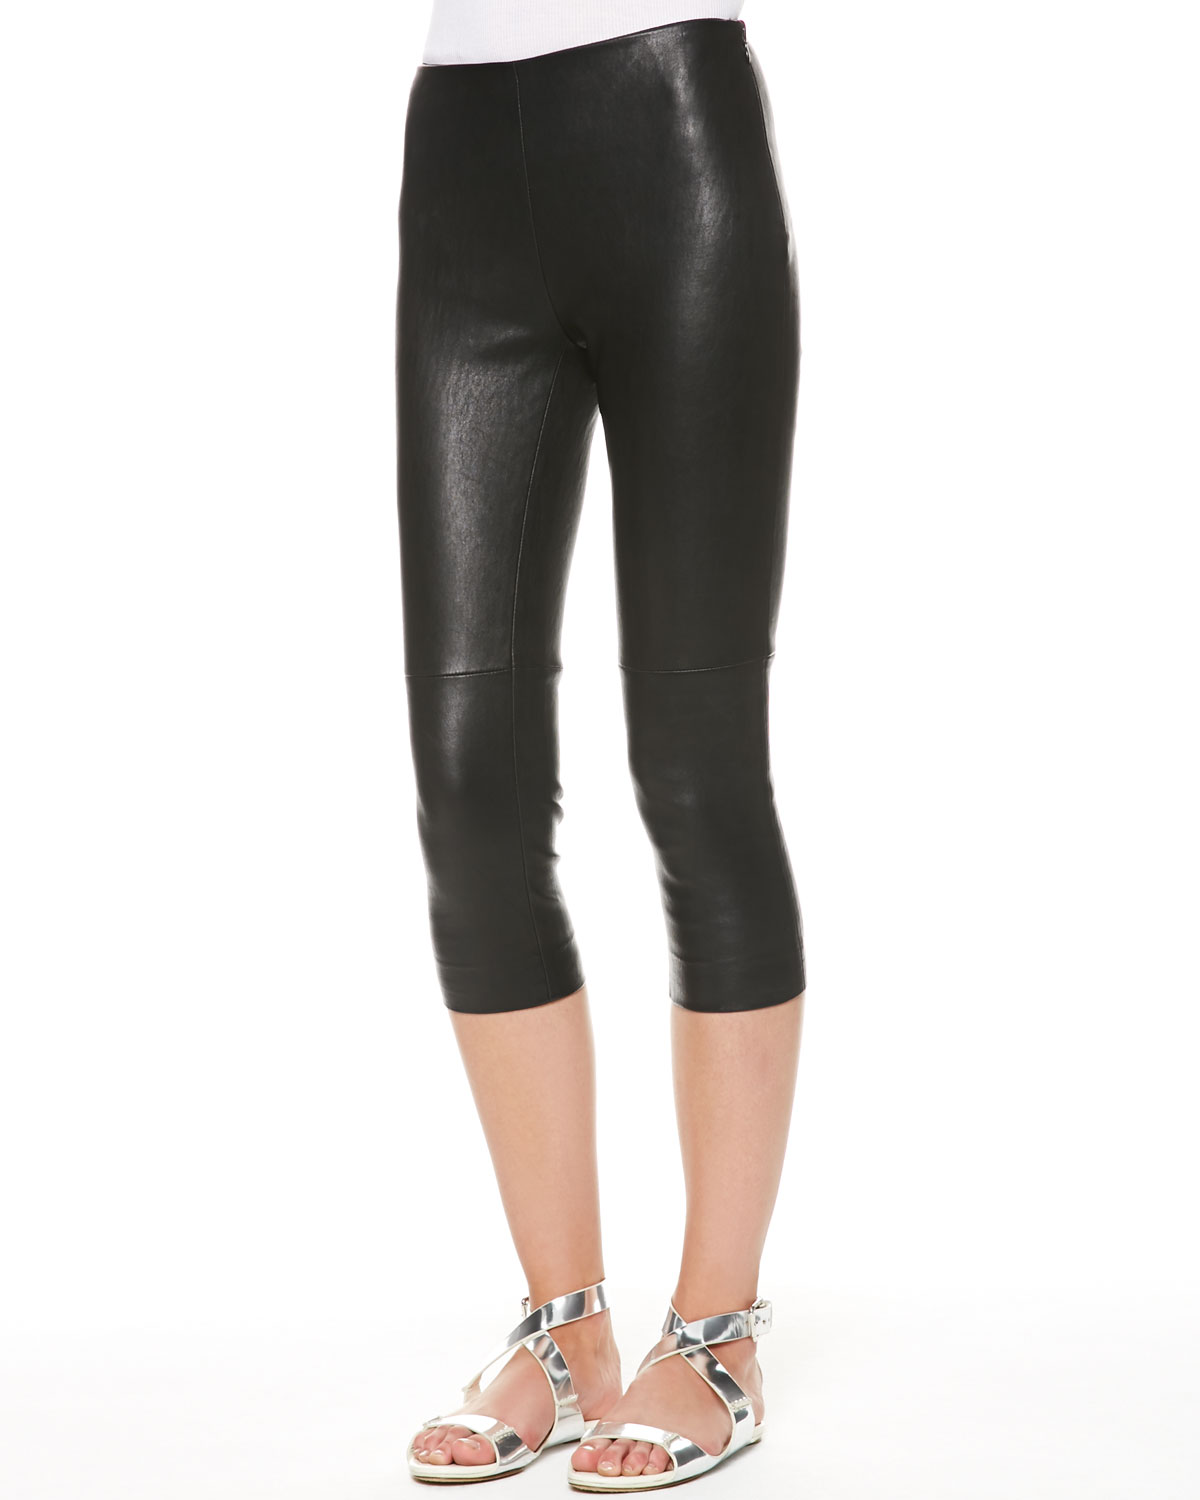 Women's Stretch Pants. invalid category id. Women's Stretch Pants. Showing 40 of 40 results that match your query. Product - TD Collections Three-quarter Tights Capri Yoga Sport Workout Leggings Pants. Product Image. Price $ Product Title. TD Collections Three-quarter Tights Capri Yoga Sport Workout Leggings Pants. Add To Cart.